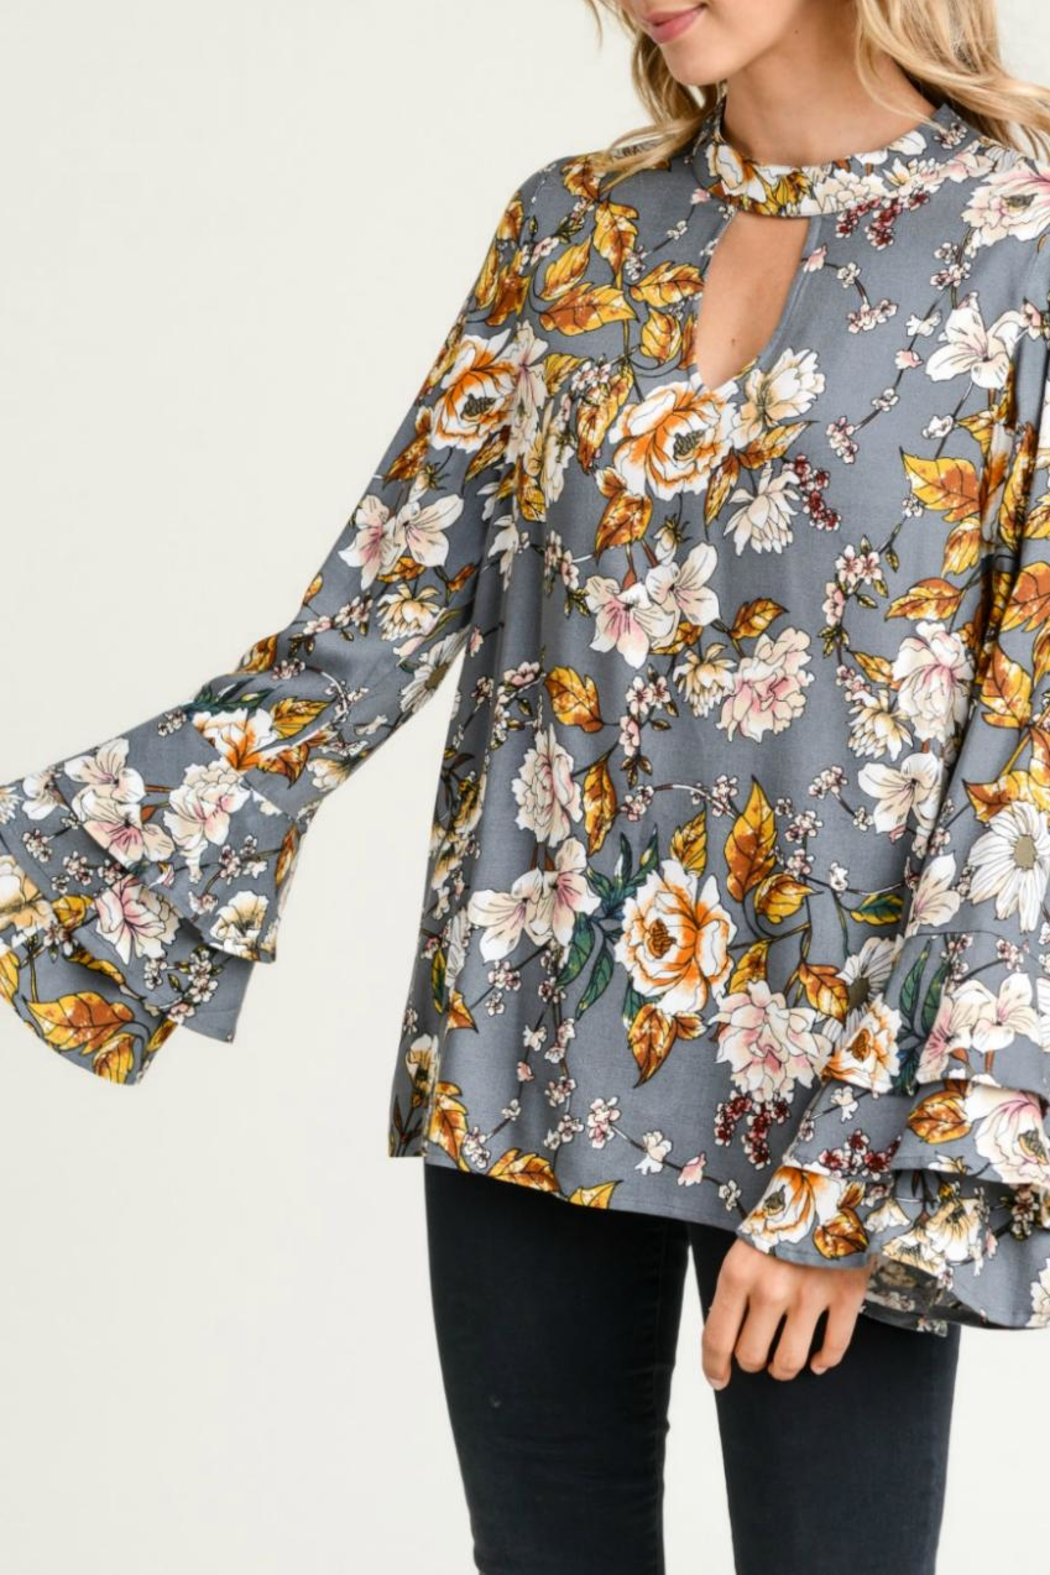 a1ec4501e1241c Jodifl Floral Bell-Sleeve Top from Kansas by Seirer's Clothing ...